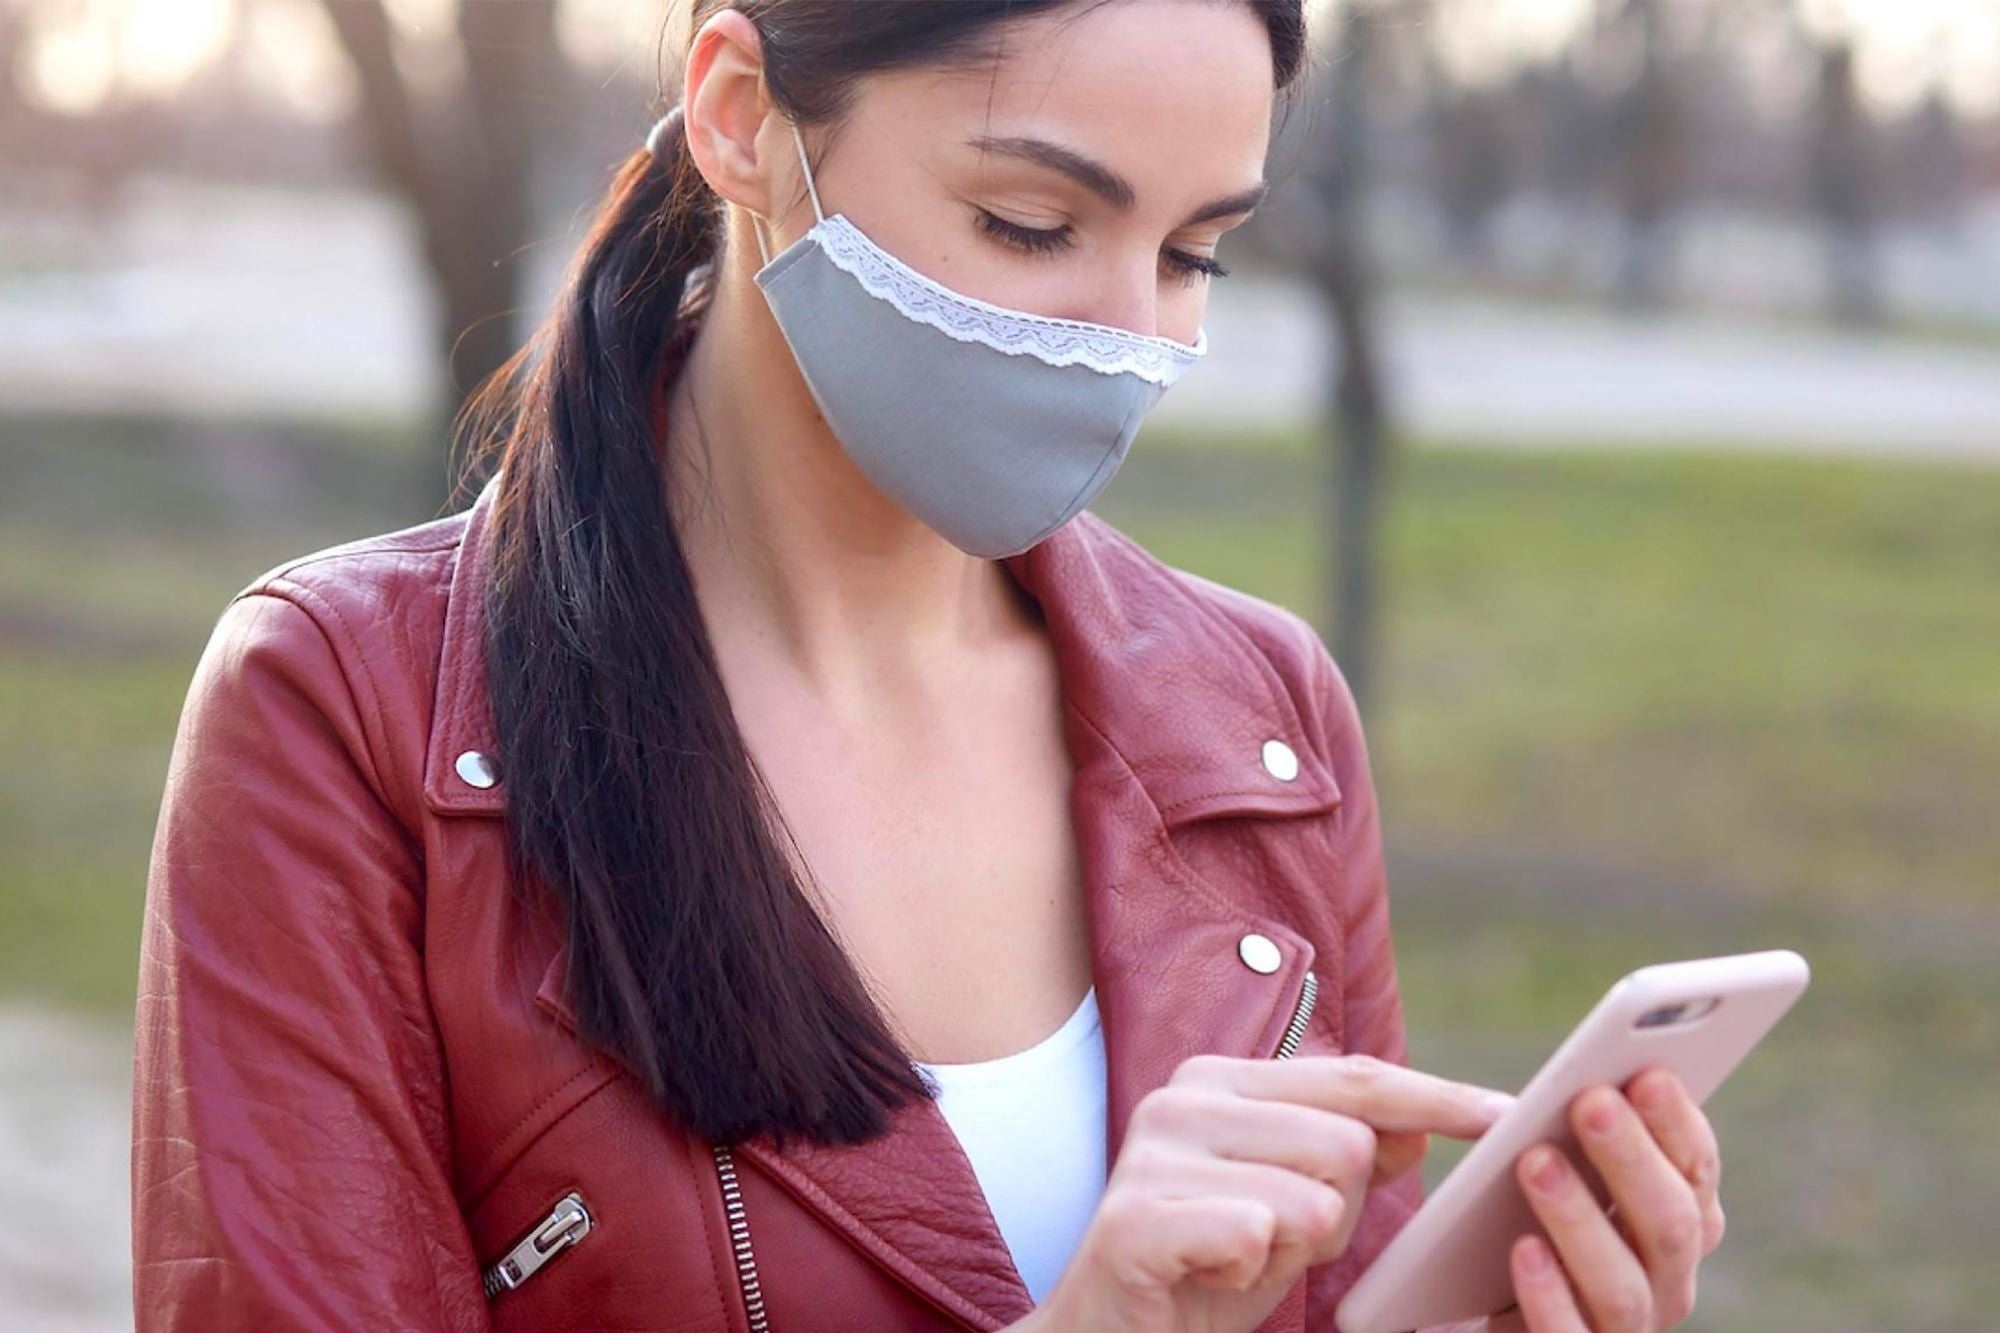 The World Health Organization Is Developing a COVID-19 Symptom-Checking App